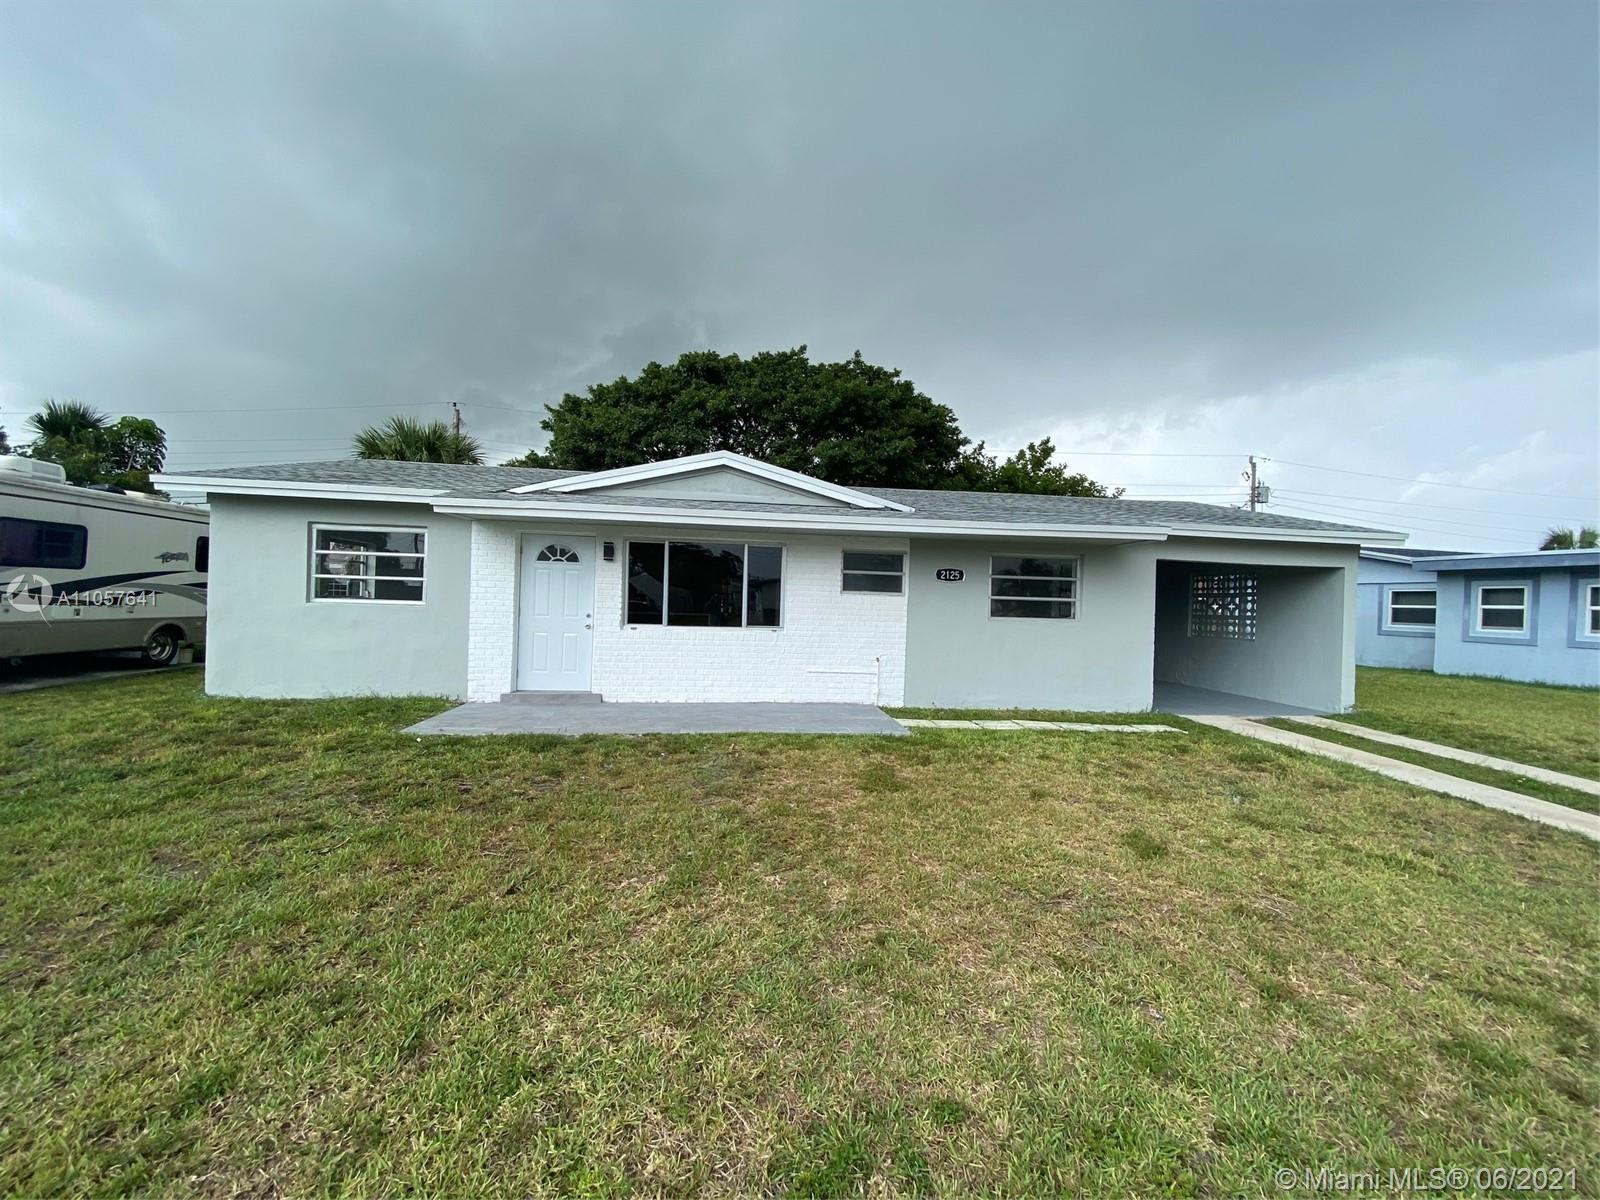 OPEN HOUSE, Saturday 7/24 12 PM - 3 PM. Completely Remodeled 4 Bedroom, 2 Bathroom. EVERYTHING is BR